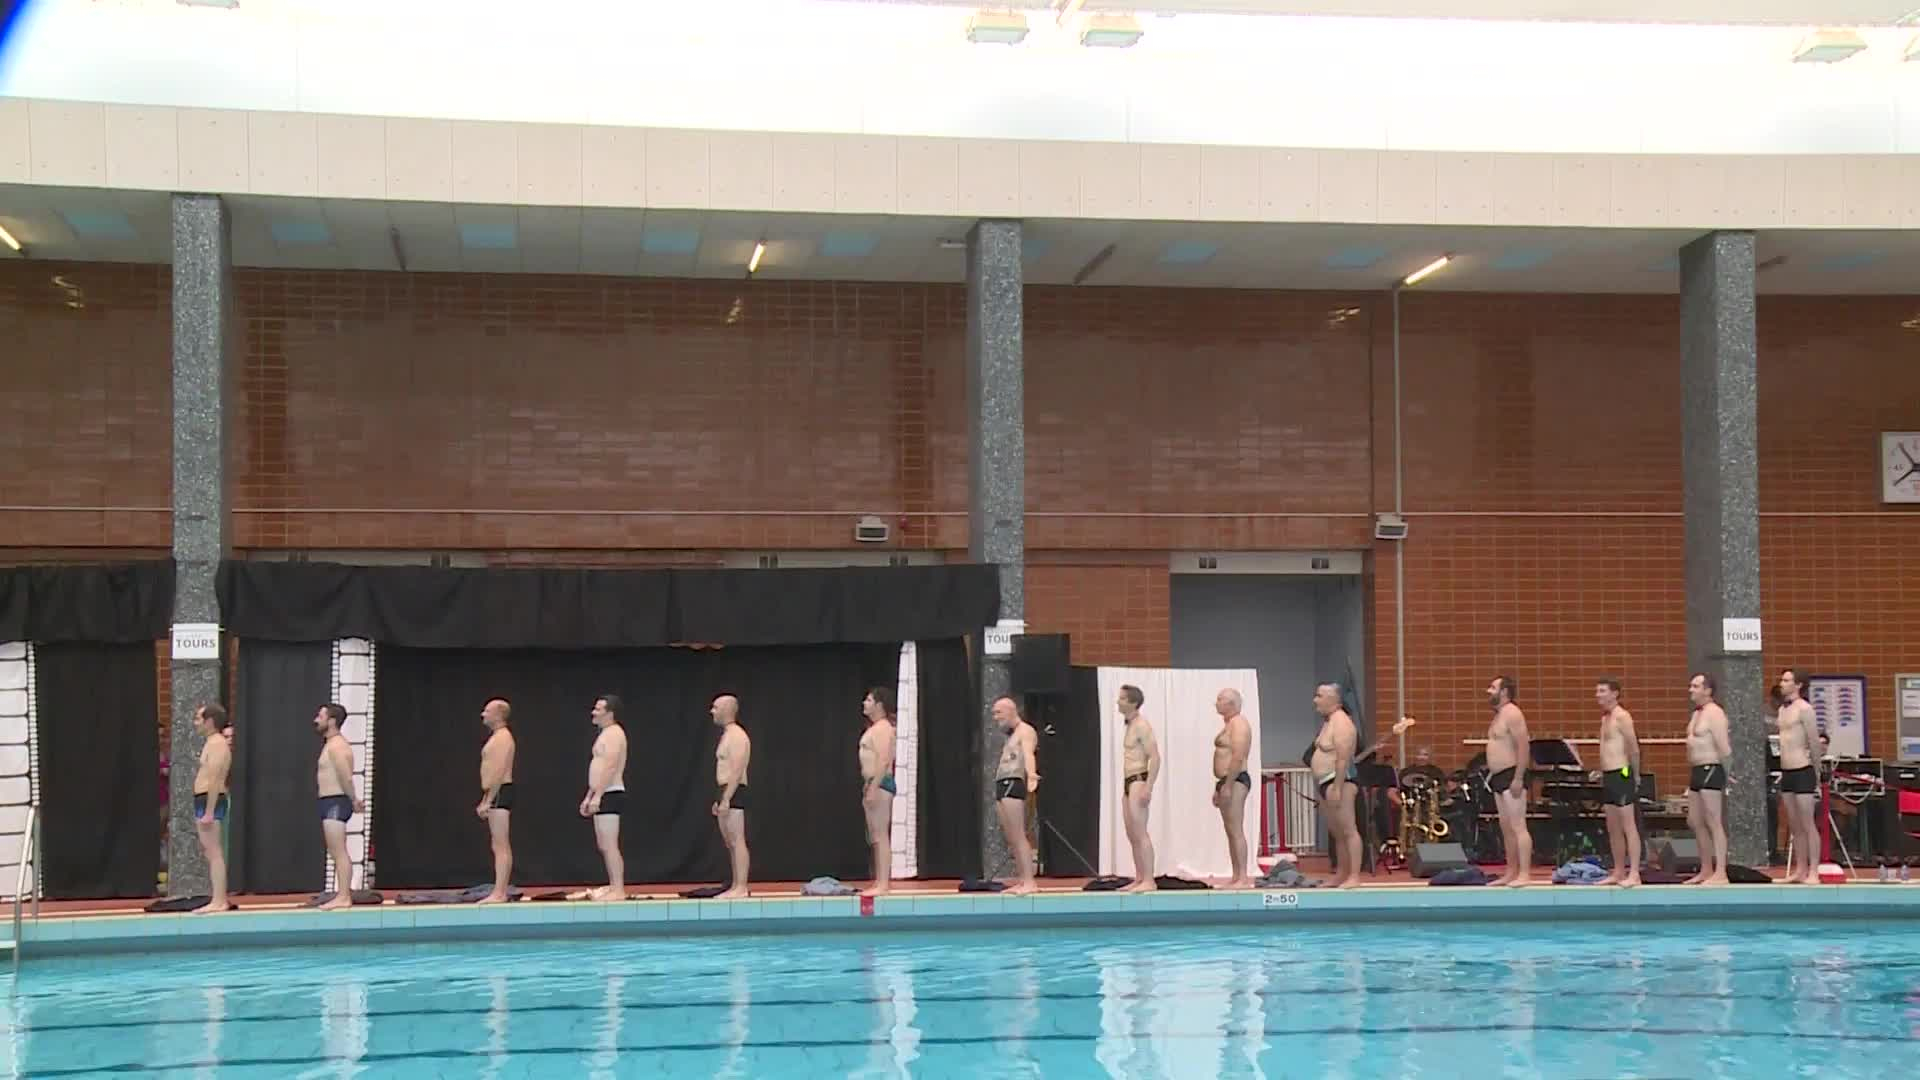 Synchronised Swimming Dads Defy Stereotypes On Father's Day ... intérieur Piscine Gilbert Bozon